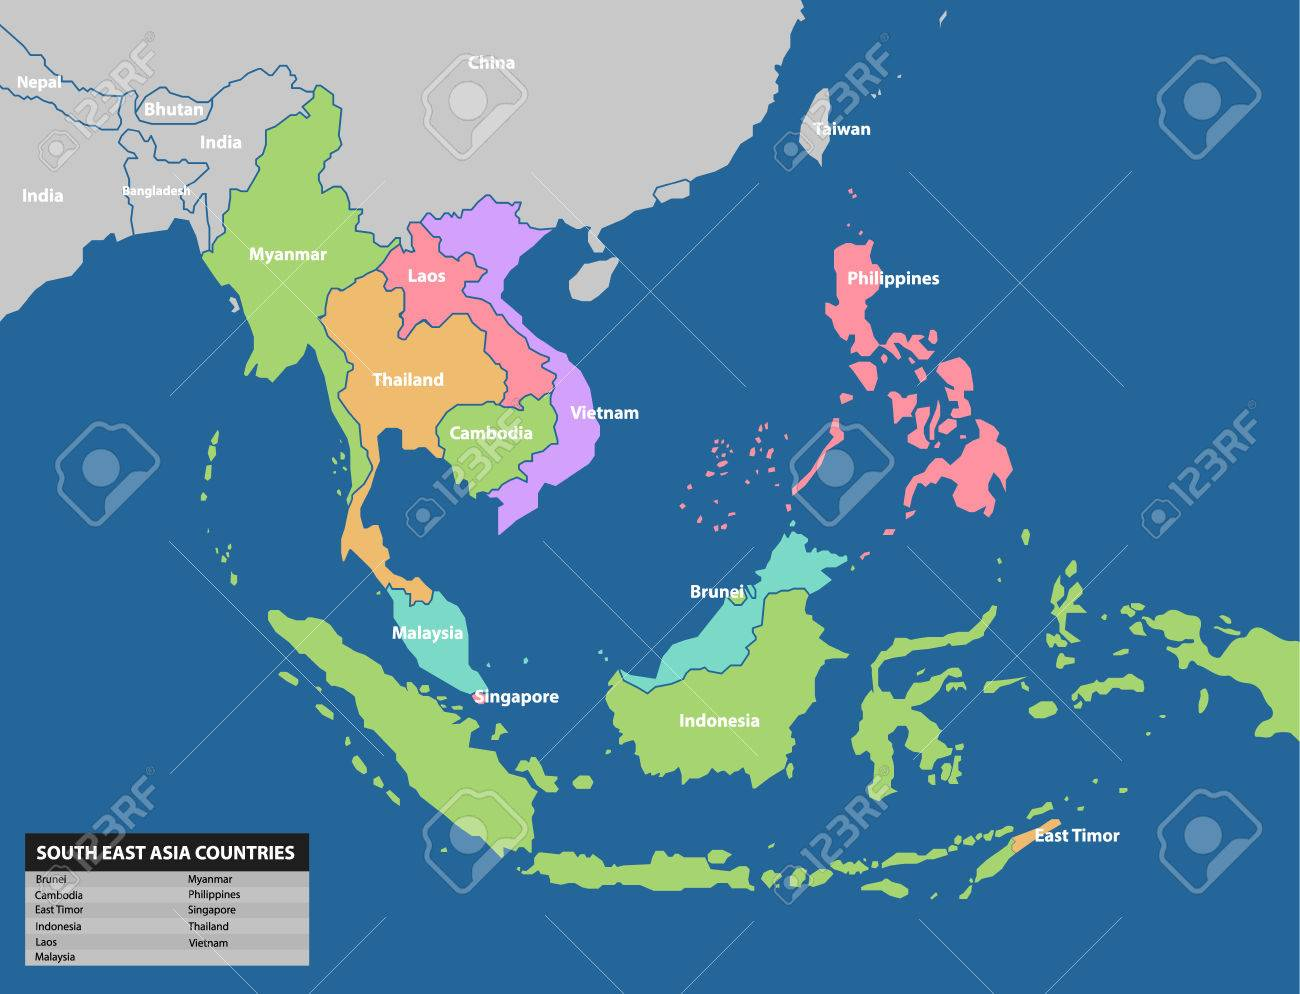 Southeast asia map. Maps Collection - 73929400